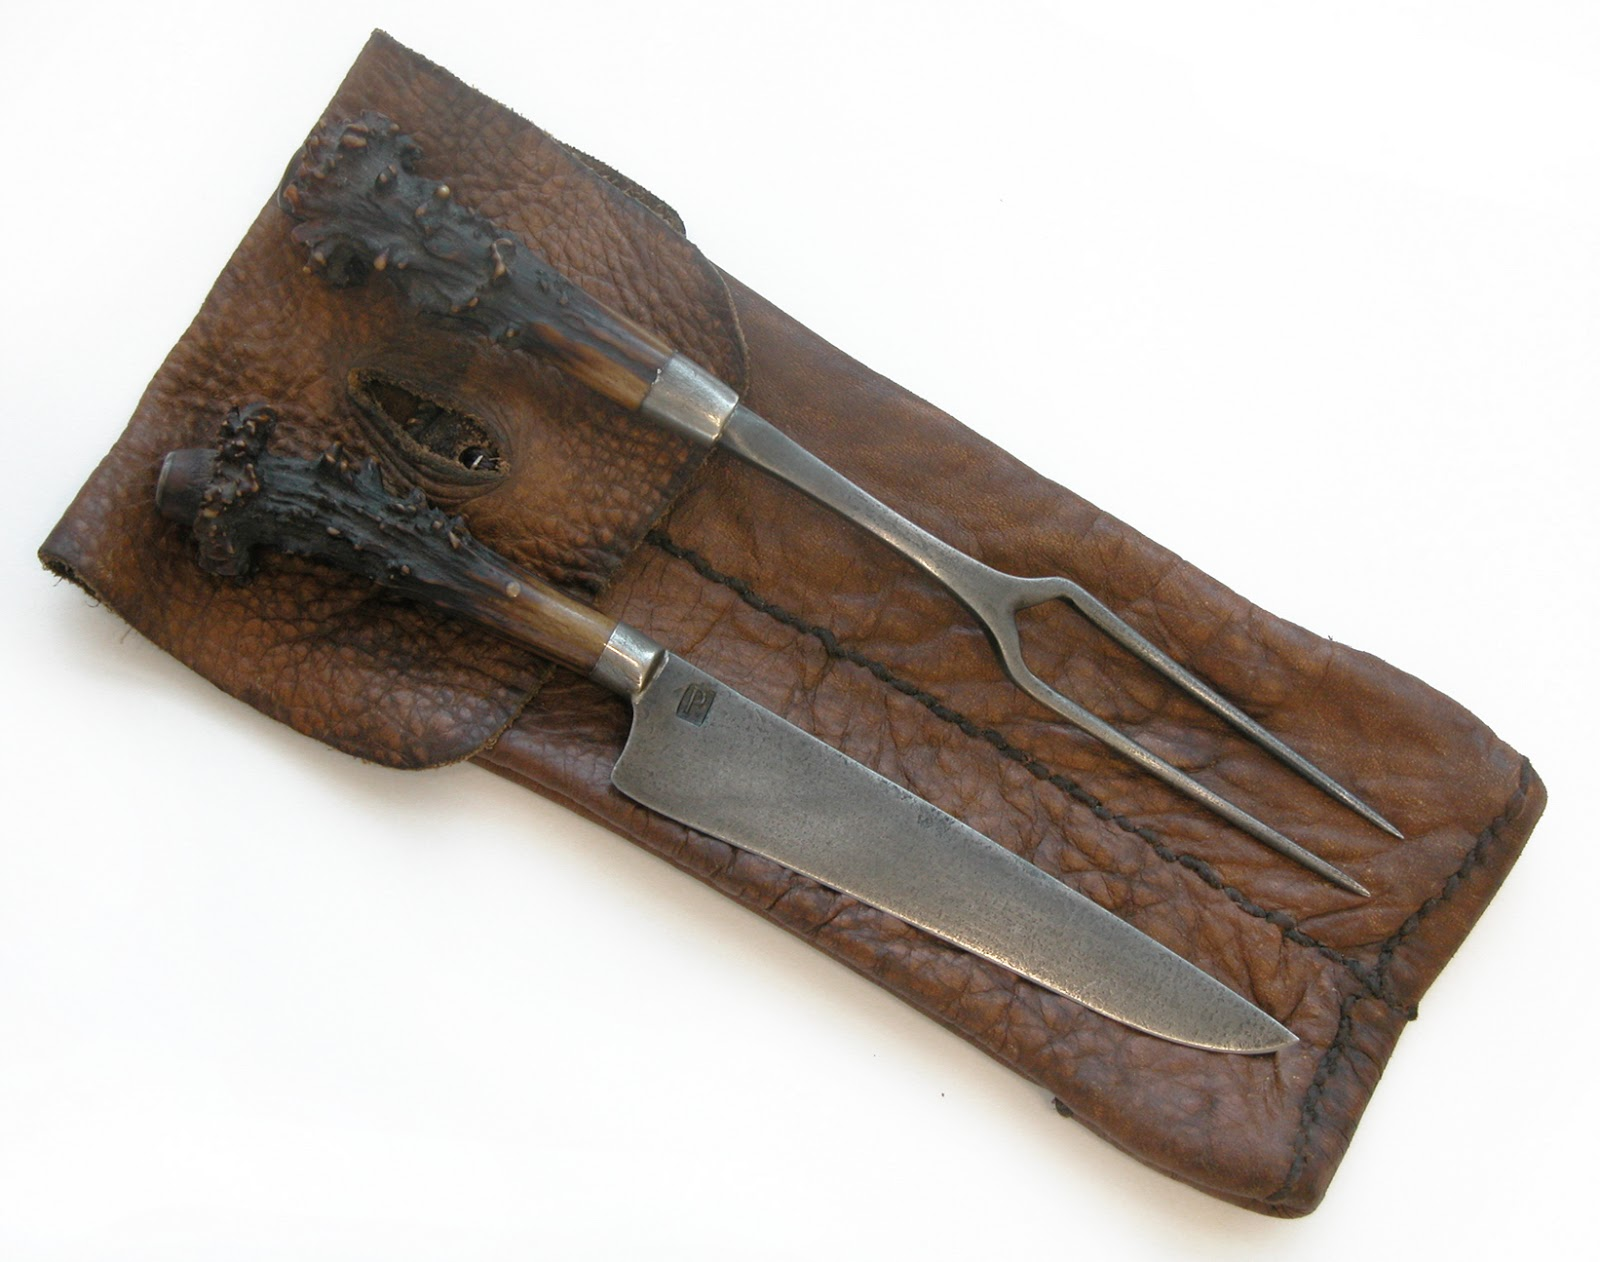 Contemporary makers knife and fork set by ian pratt - Knife and fork sets ...